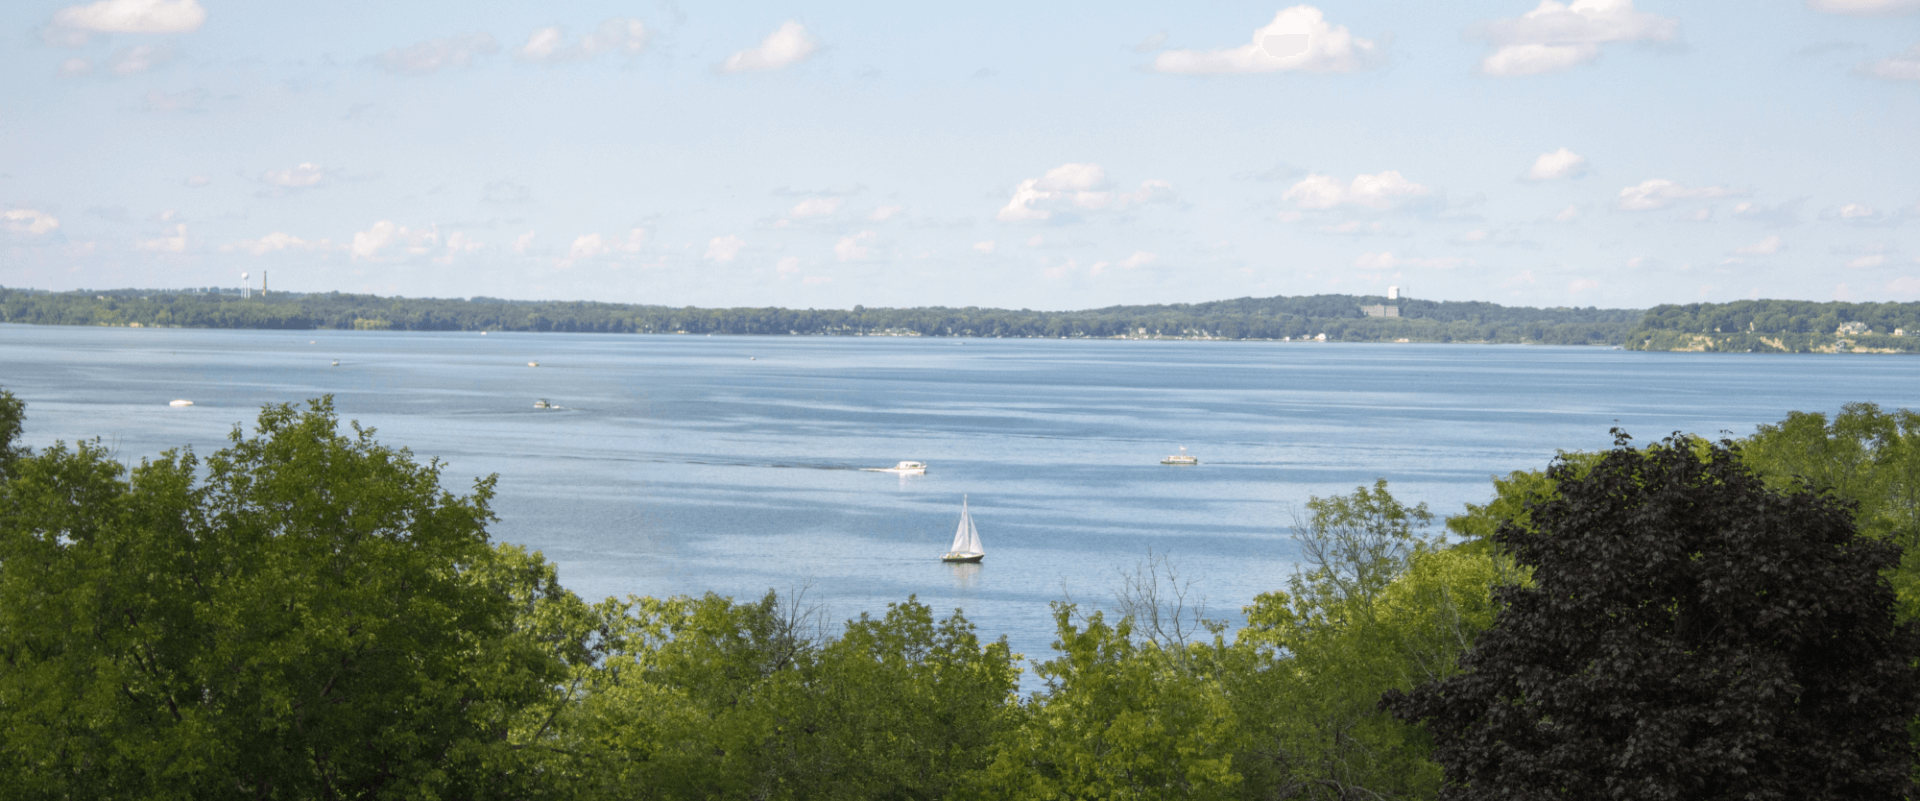 View of Lake Mendota